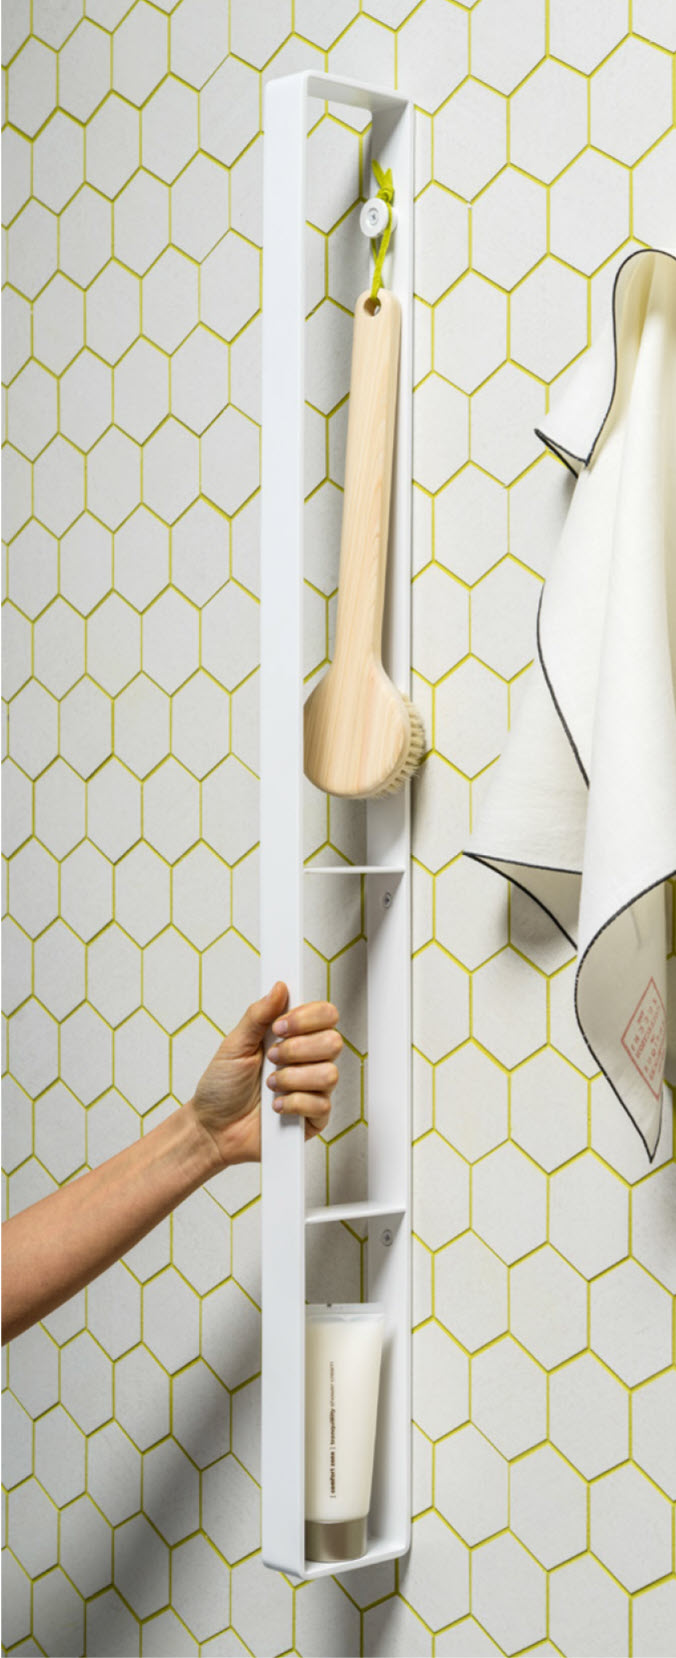 Vertical shower grab bar